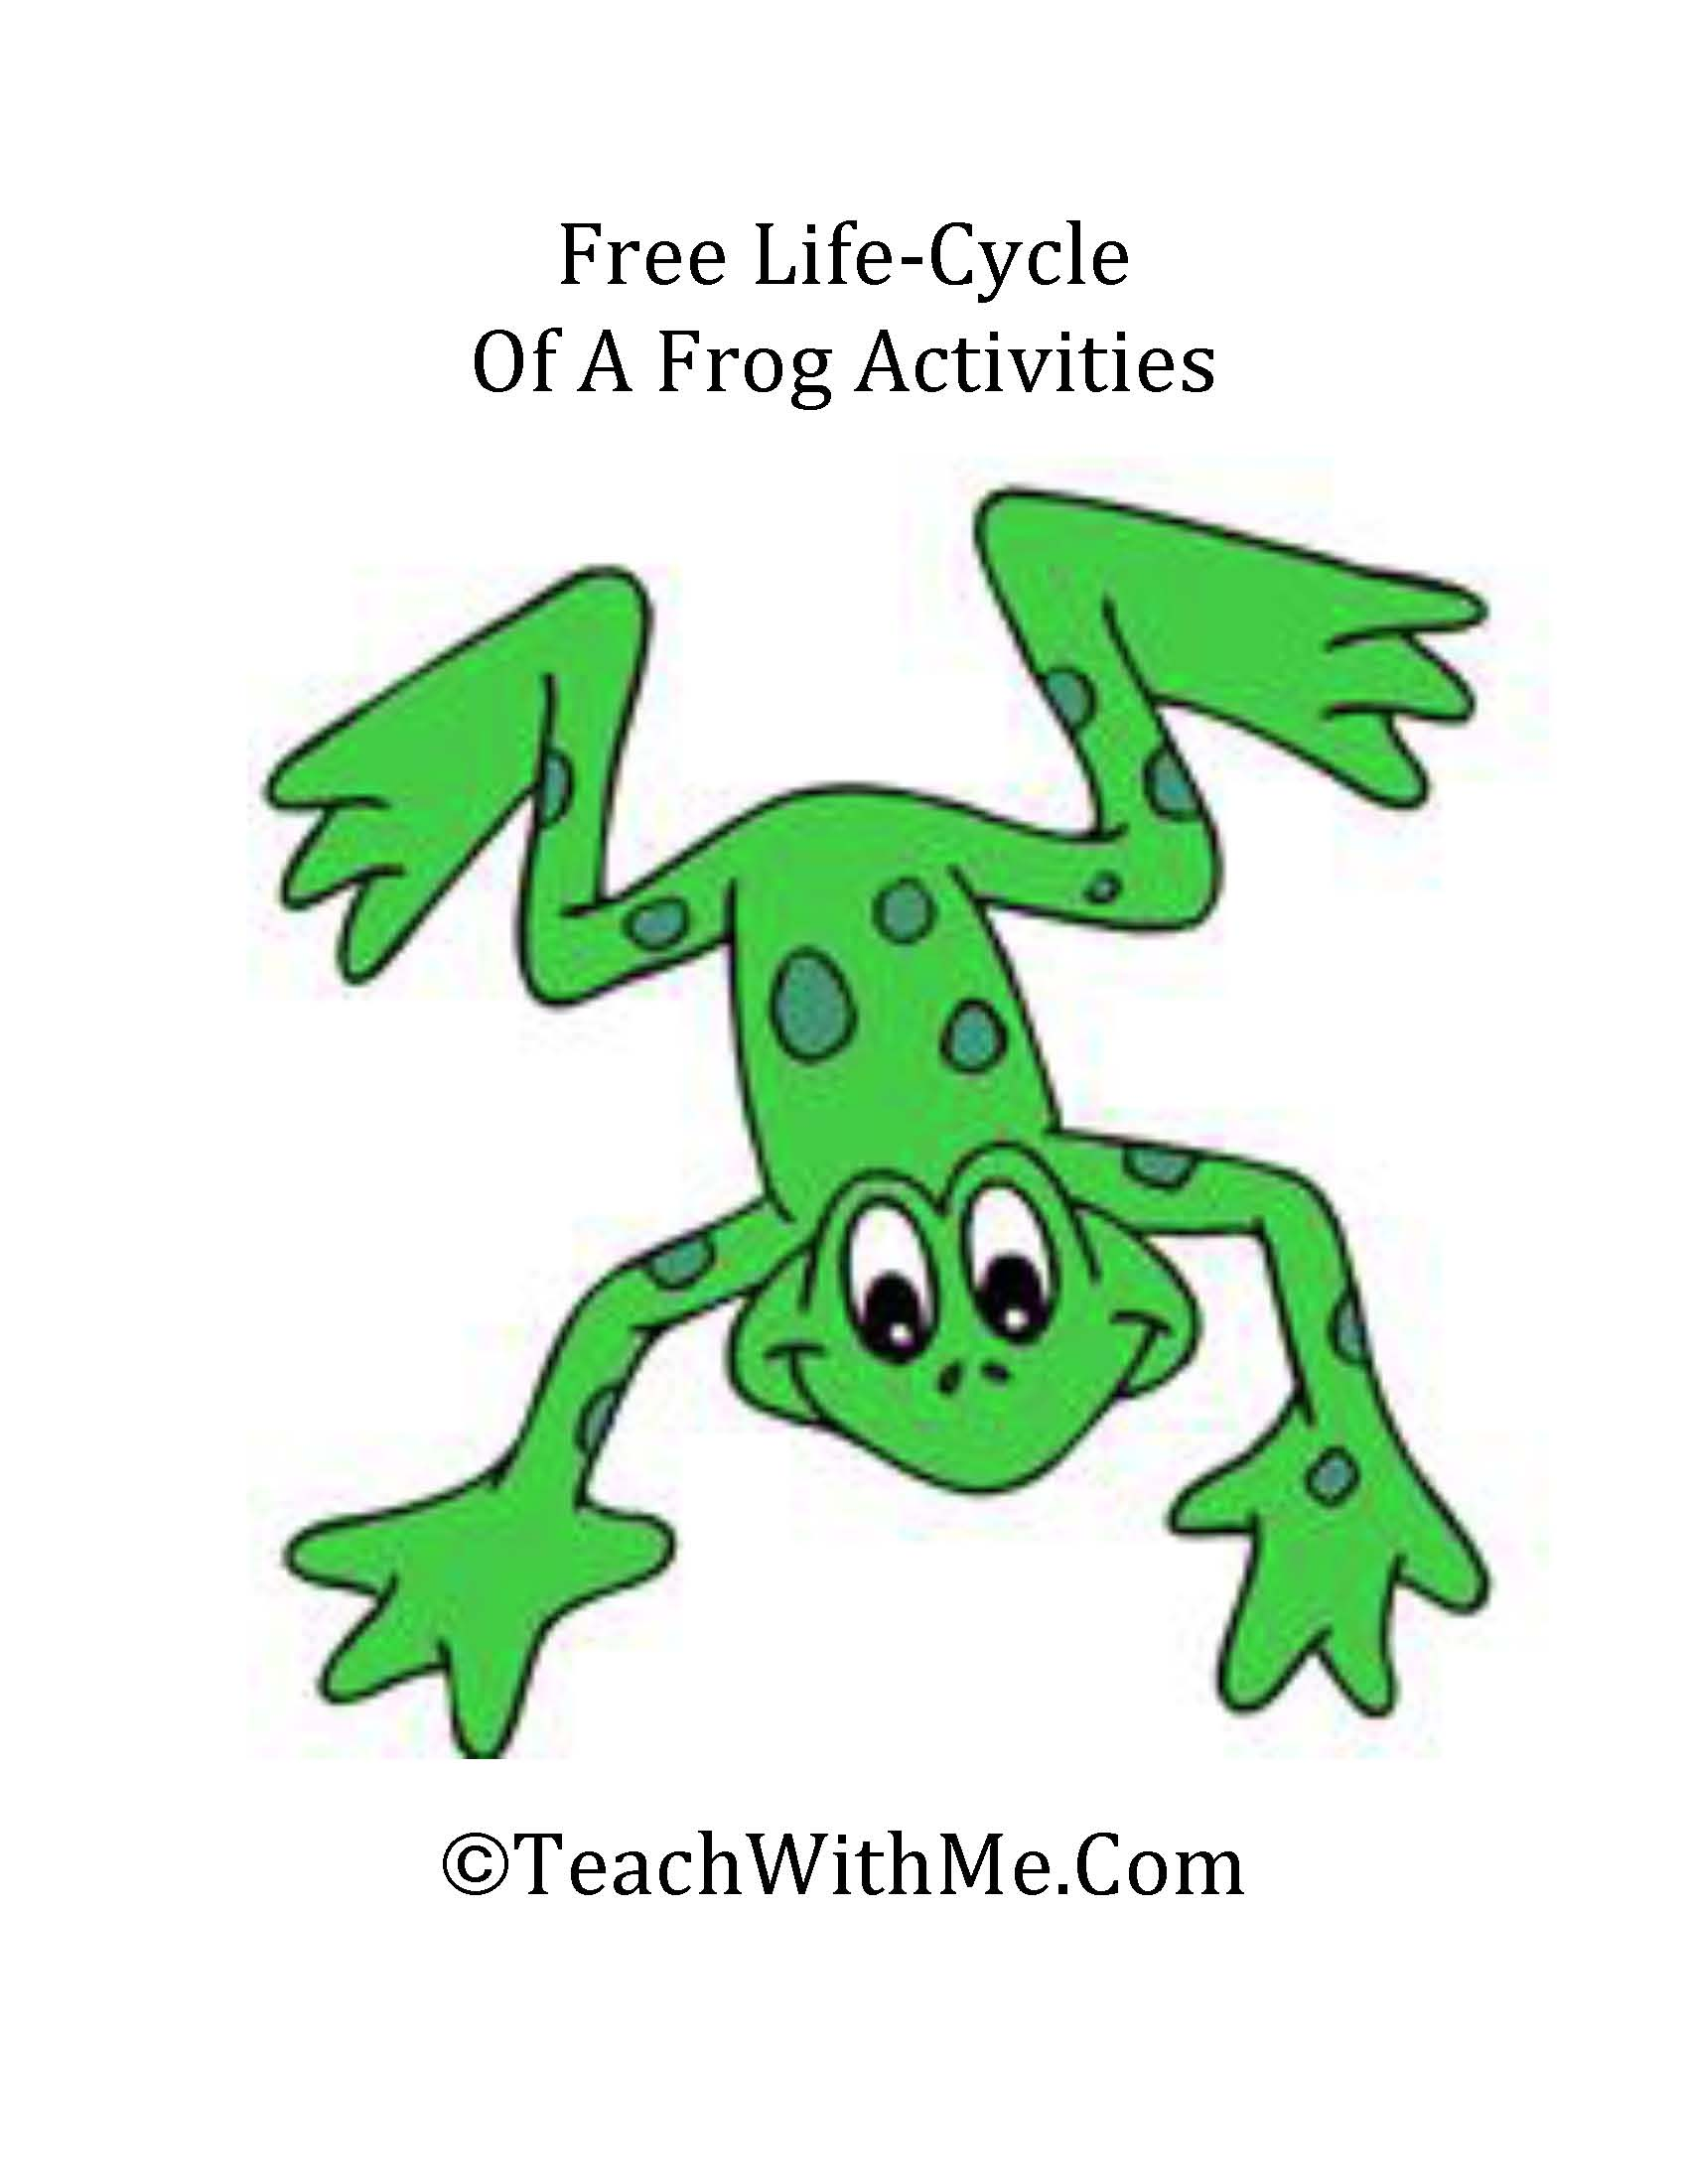 life cycle of a frog activities, life cycle of a frog lessons, life cycle of a frog projects, life cycle of a frog crown, life cycle of a frog slider, life cycle of a frog crafts, life cycle of a frog booklet, life cycle of a frog slider, life cycle of a frog centers,